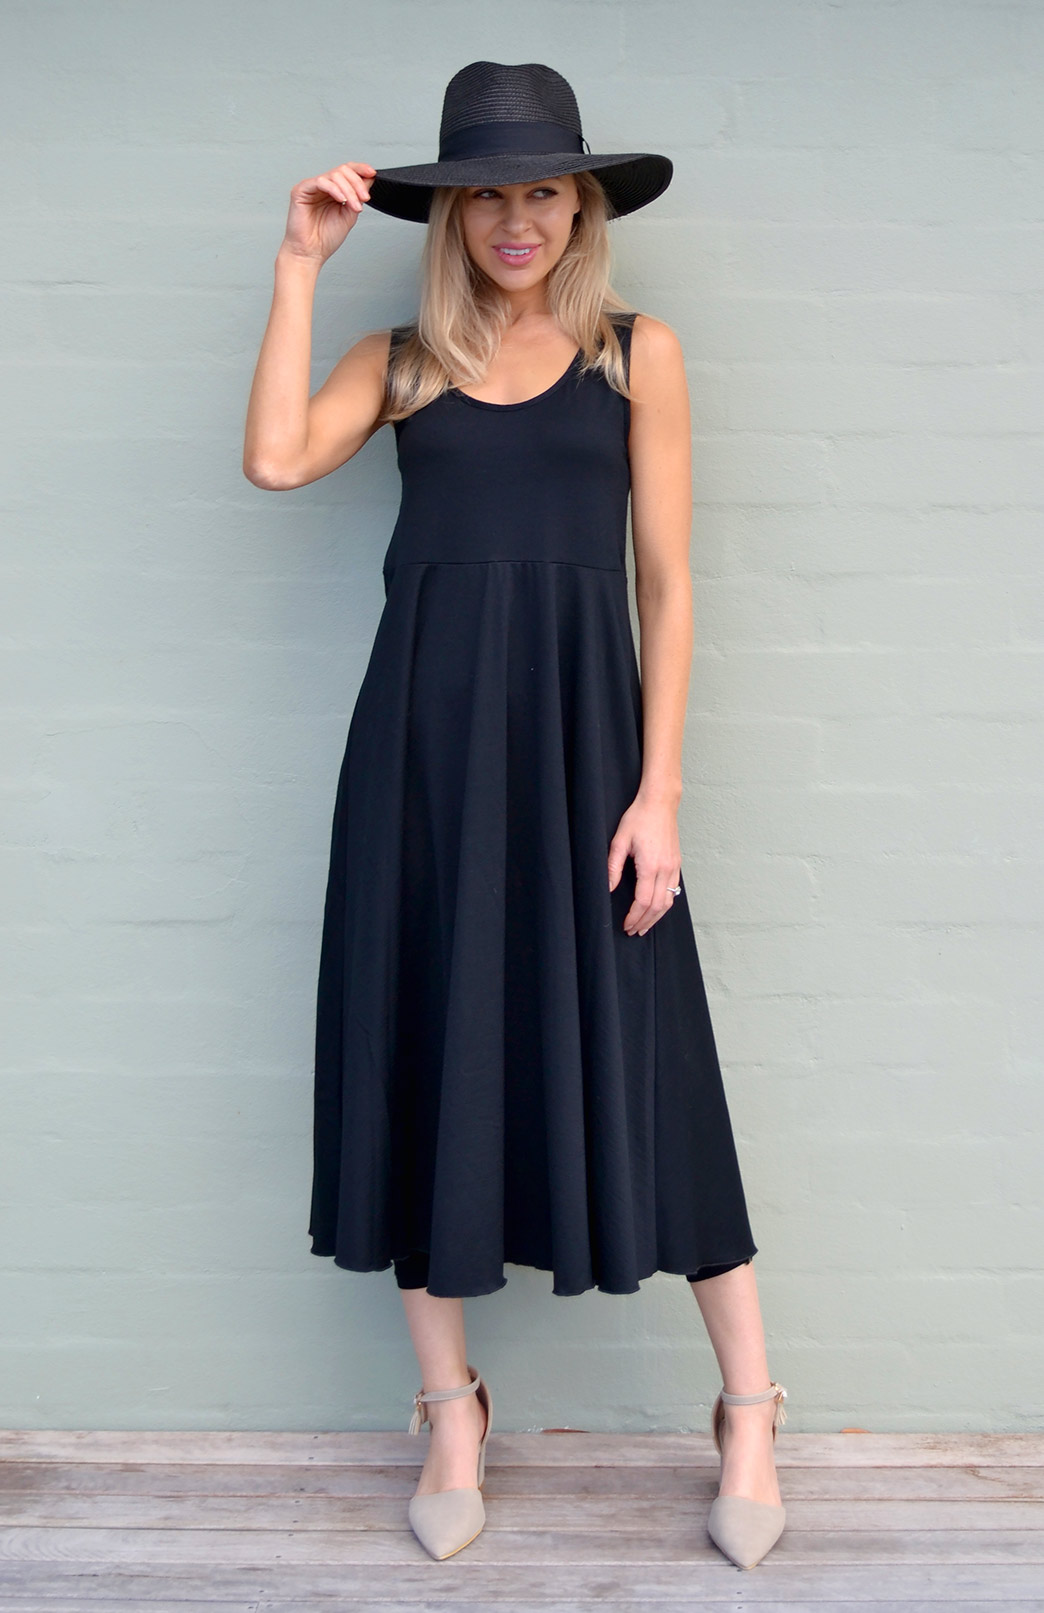 Fan Dress - Women's Black Wool Sleeveless Spring Dress - Smitten Merino Tasmania Australia